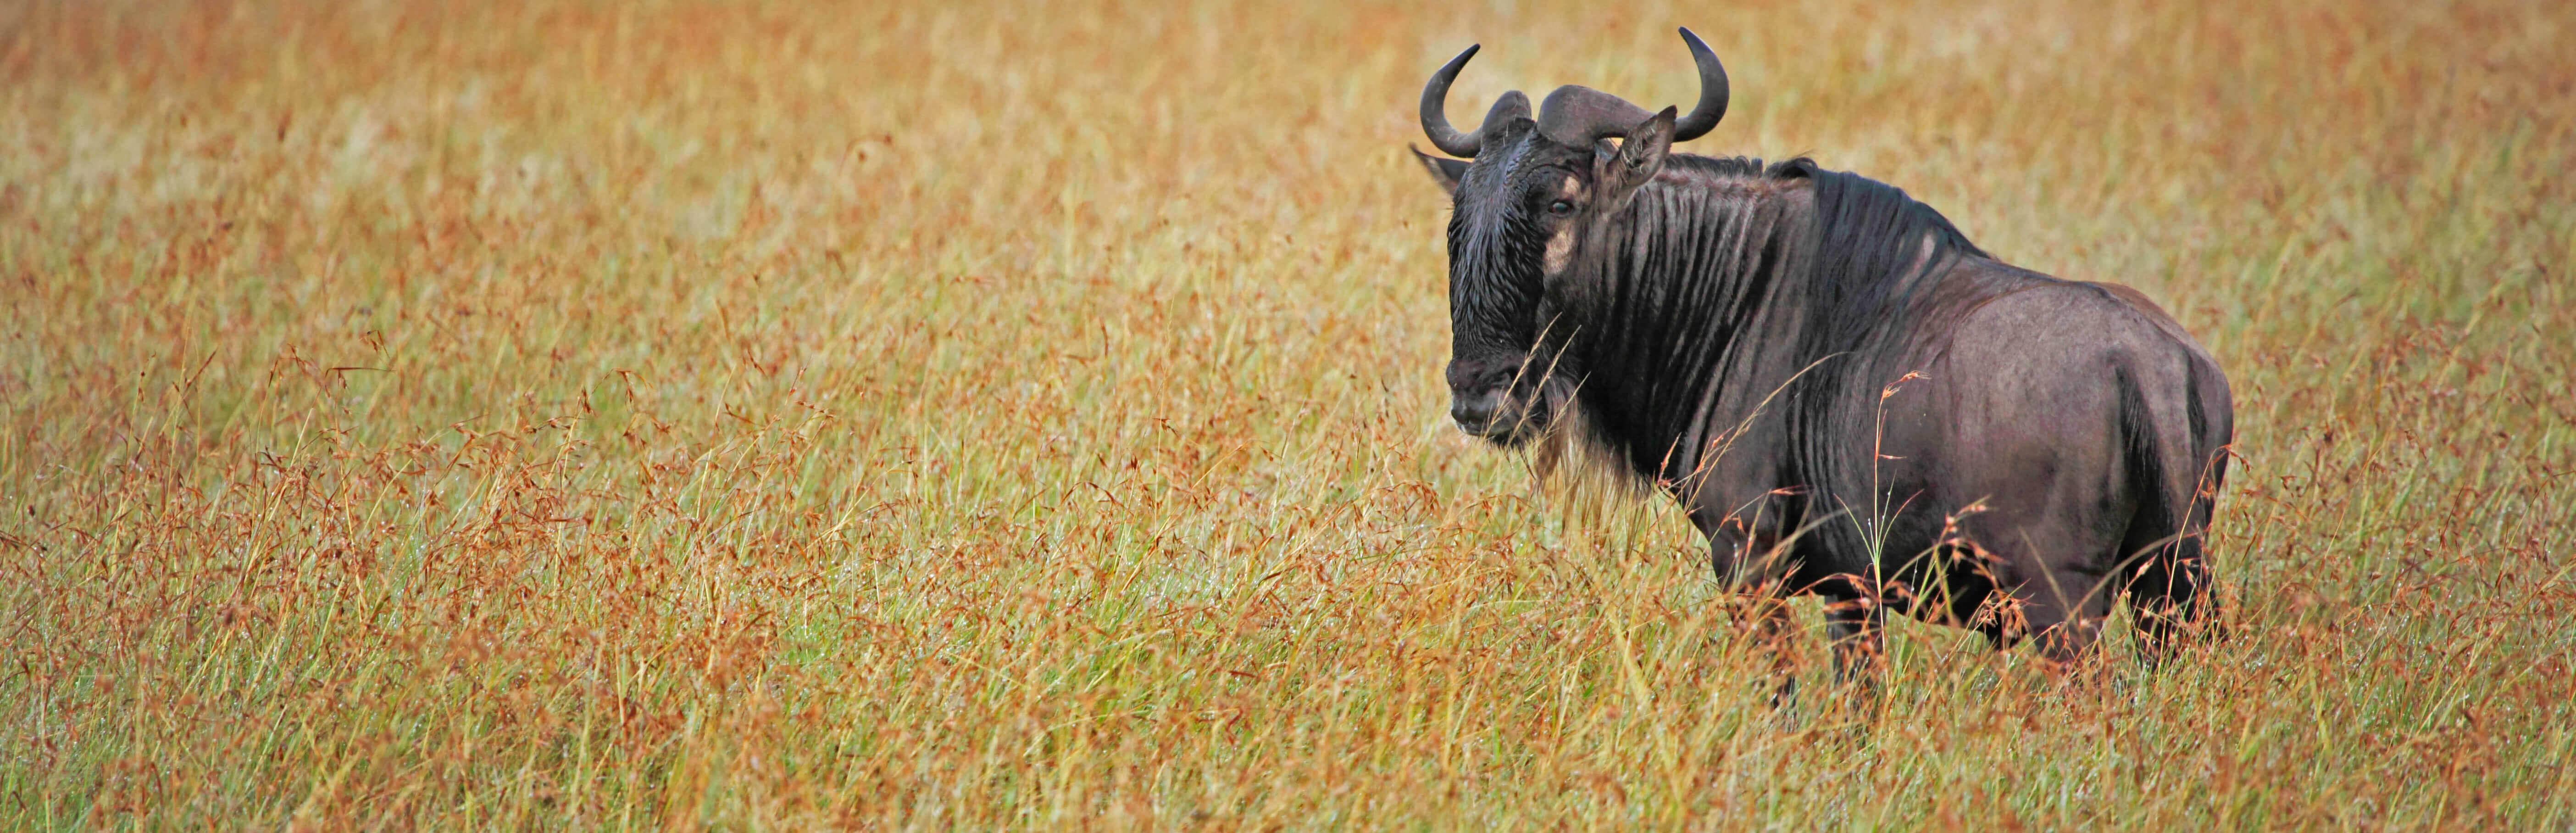 Wildebeest in Serengeti